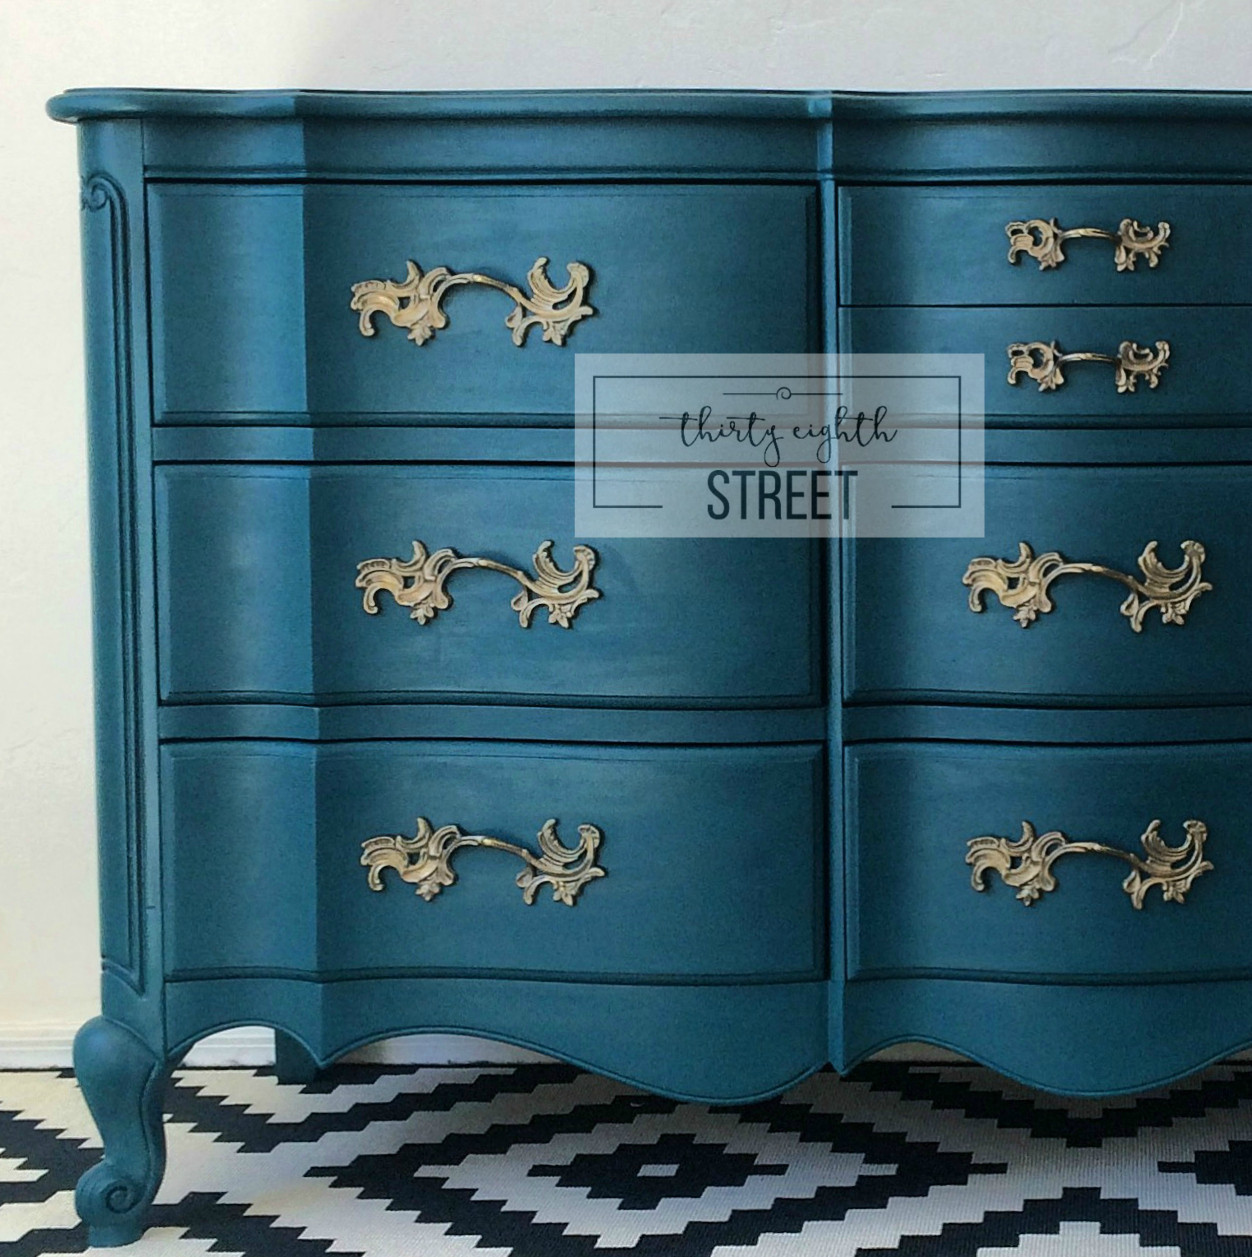 Best ideas about Paint Dresser DIY . Save or Pin Painted Dresser in Peacock Blue Thirty Eighth Street Now.